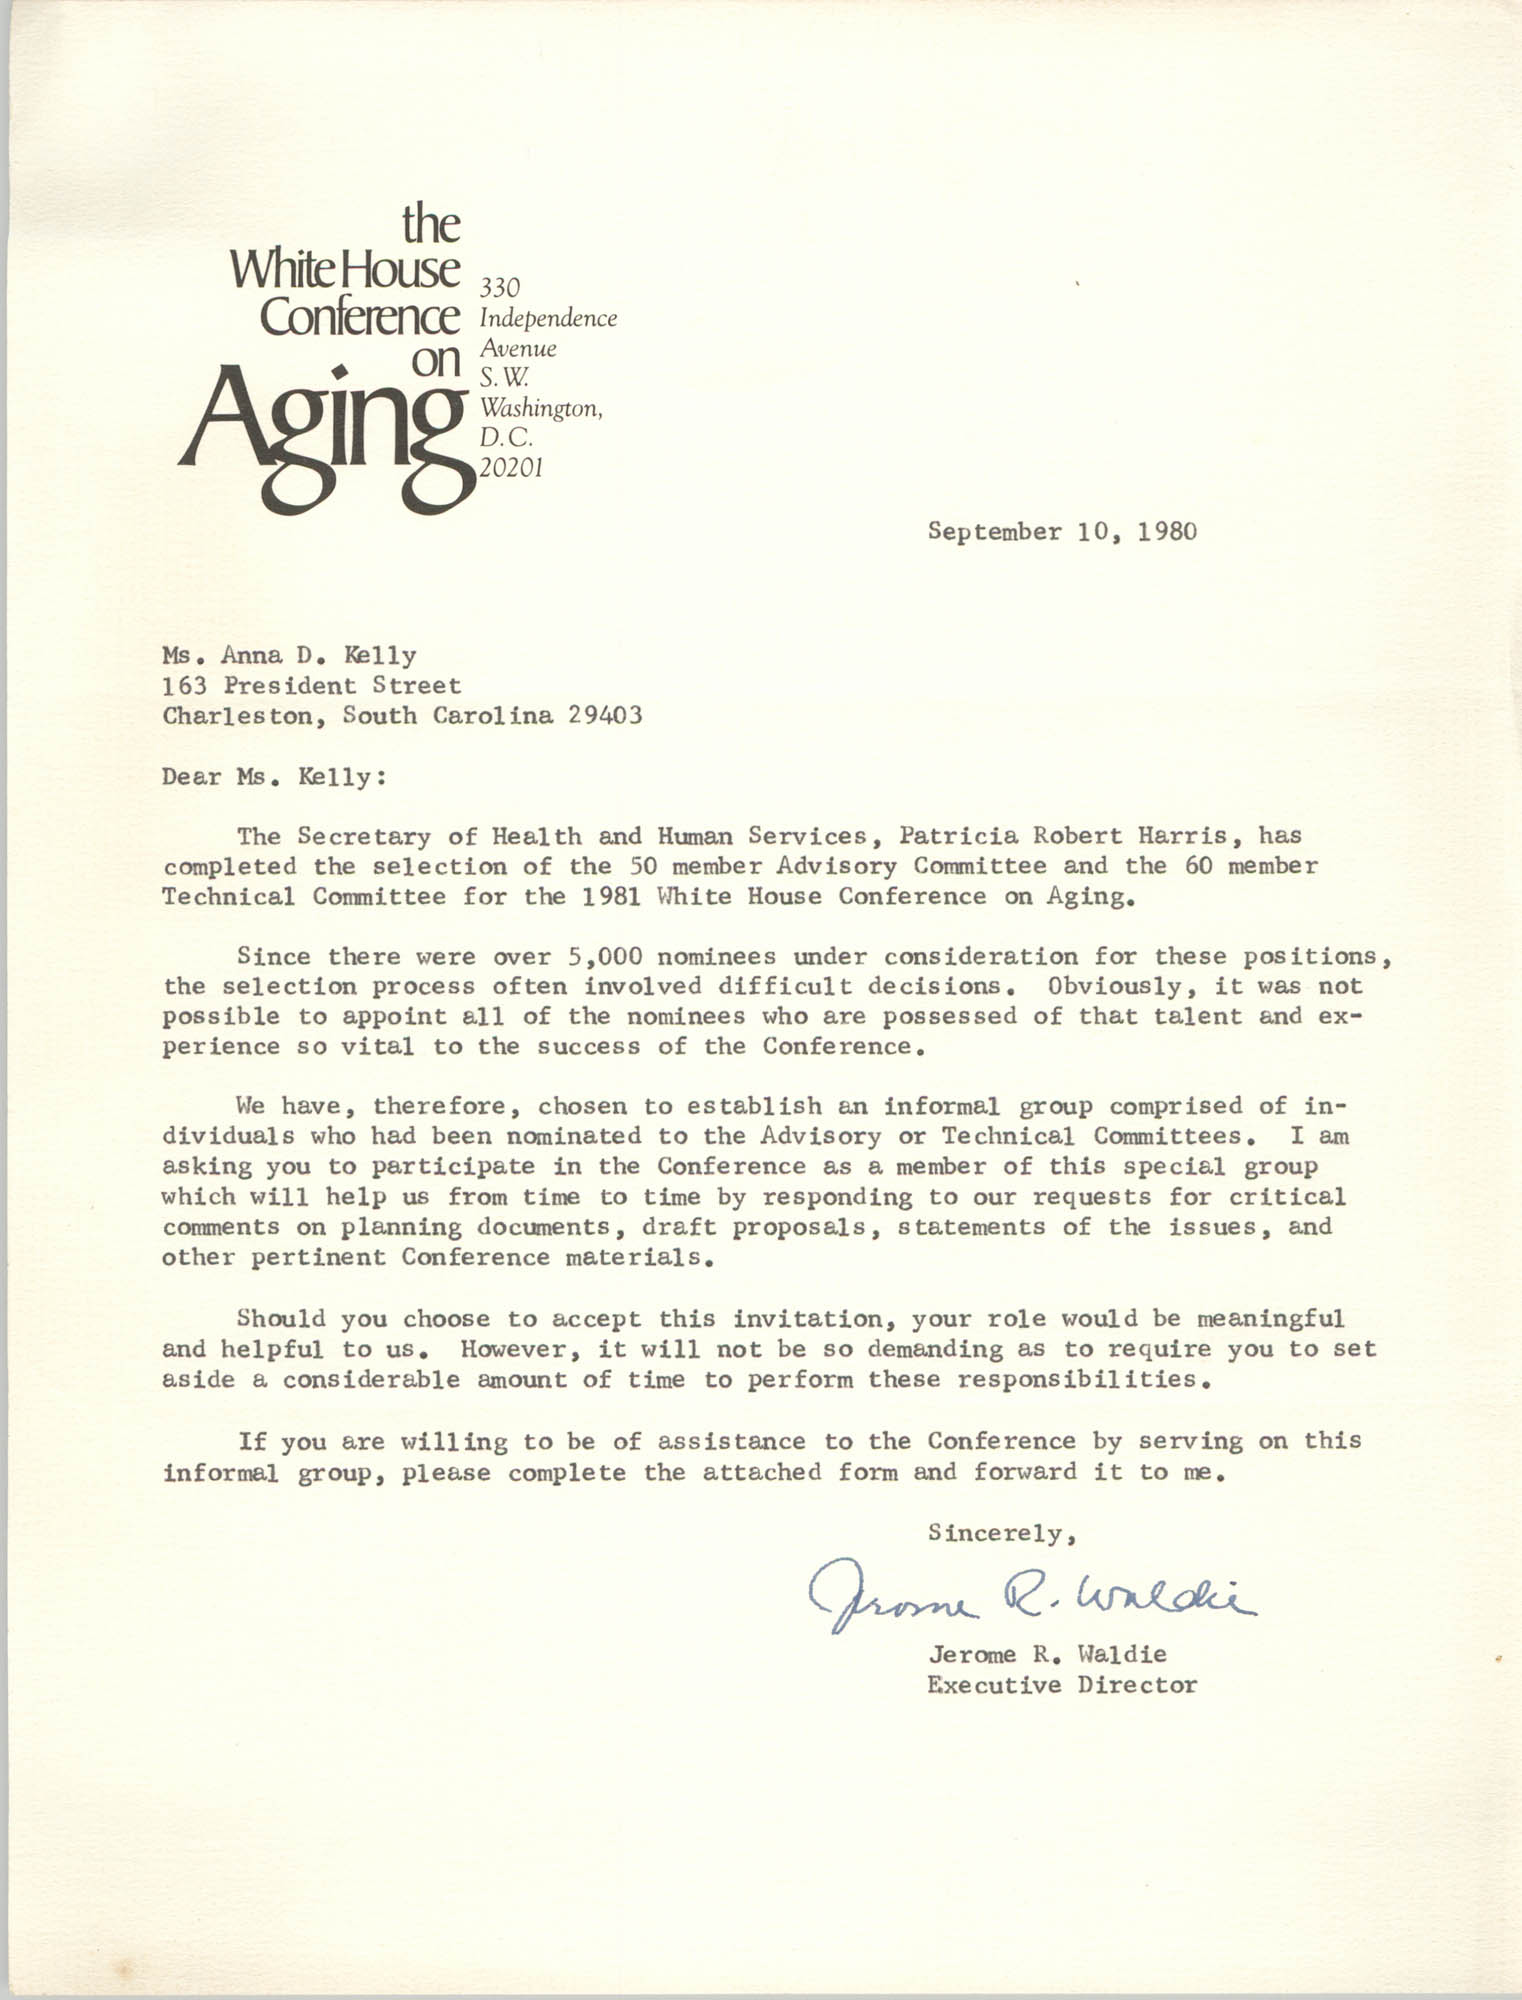 Letter from Jerome R. Waldie to Anna D. Kelly, September 10, 1980